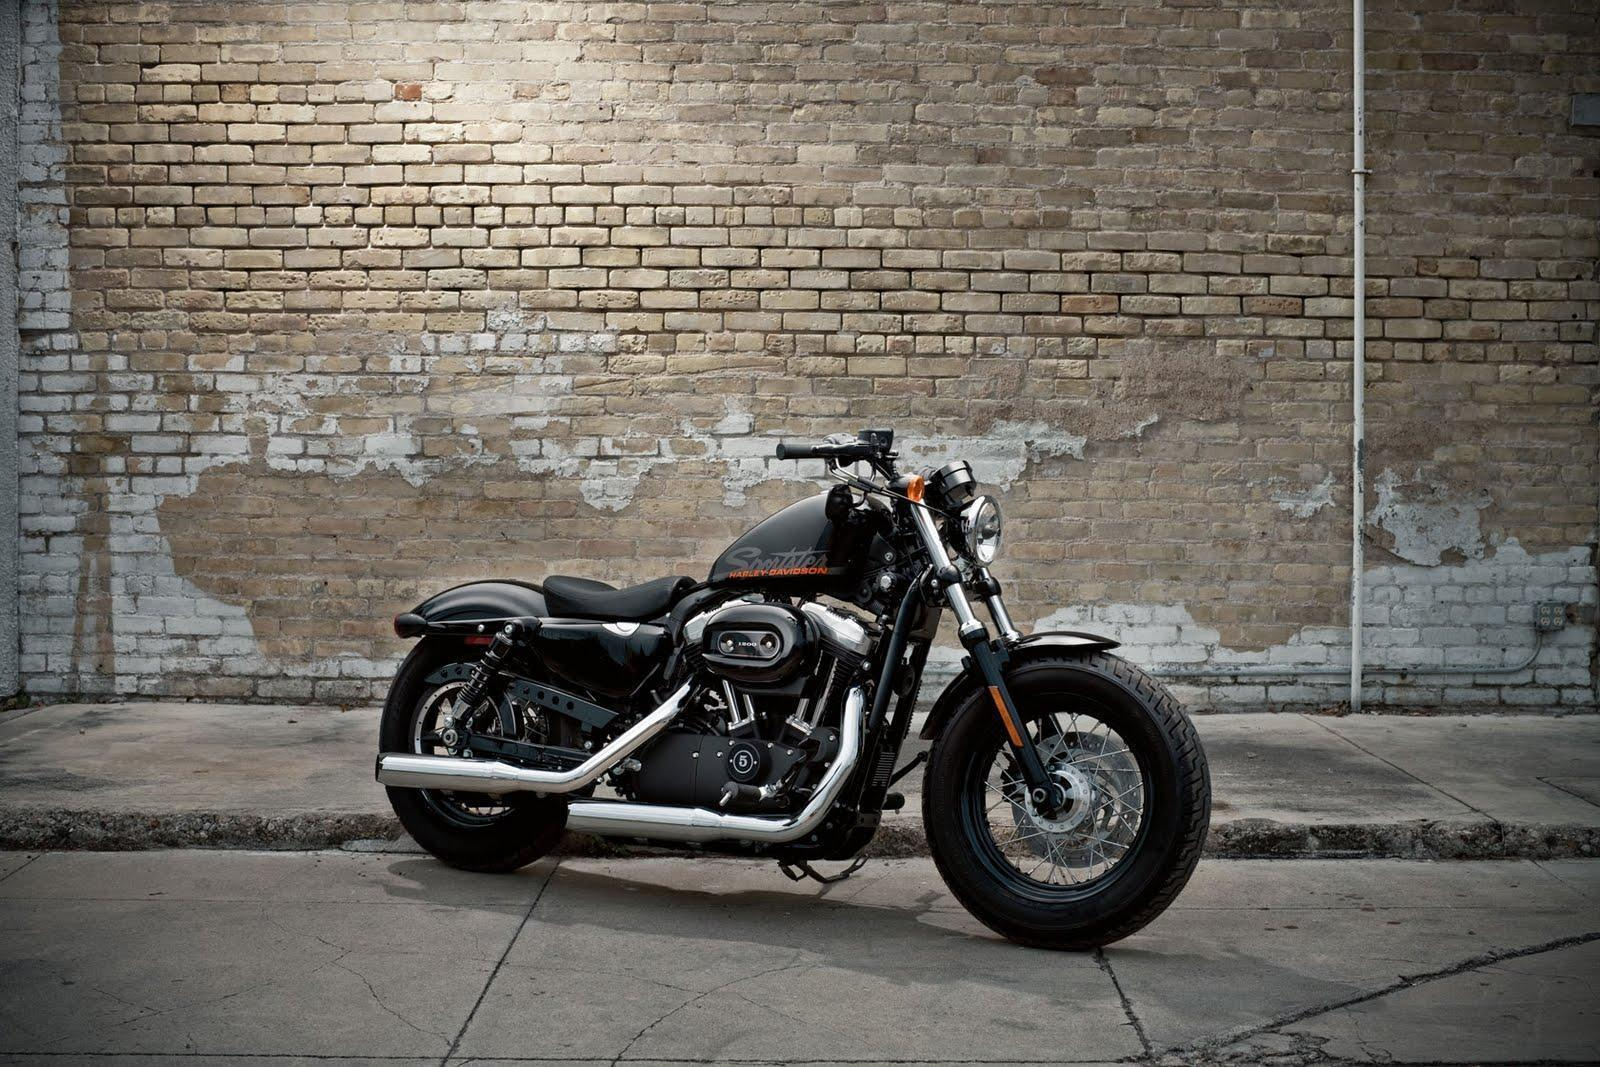 Wallpapers For > Harley Davidson Bikes Wallpapers Hd 2012